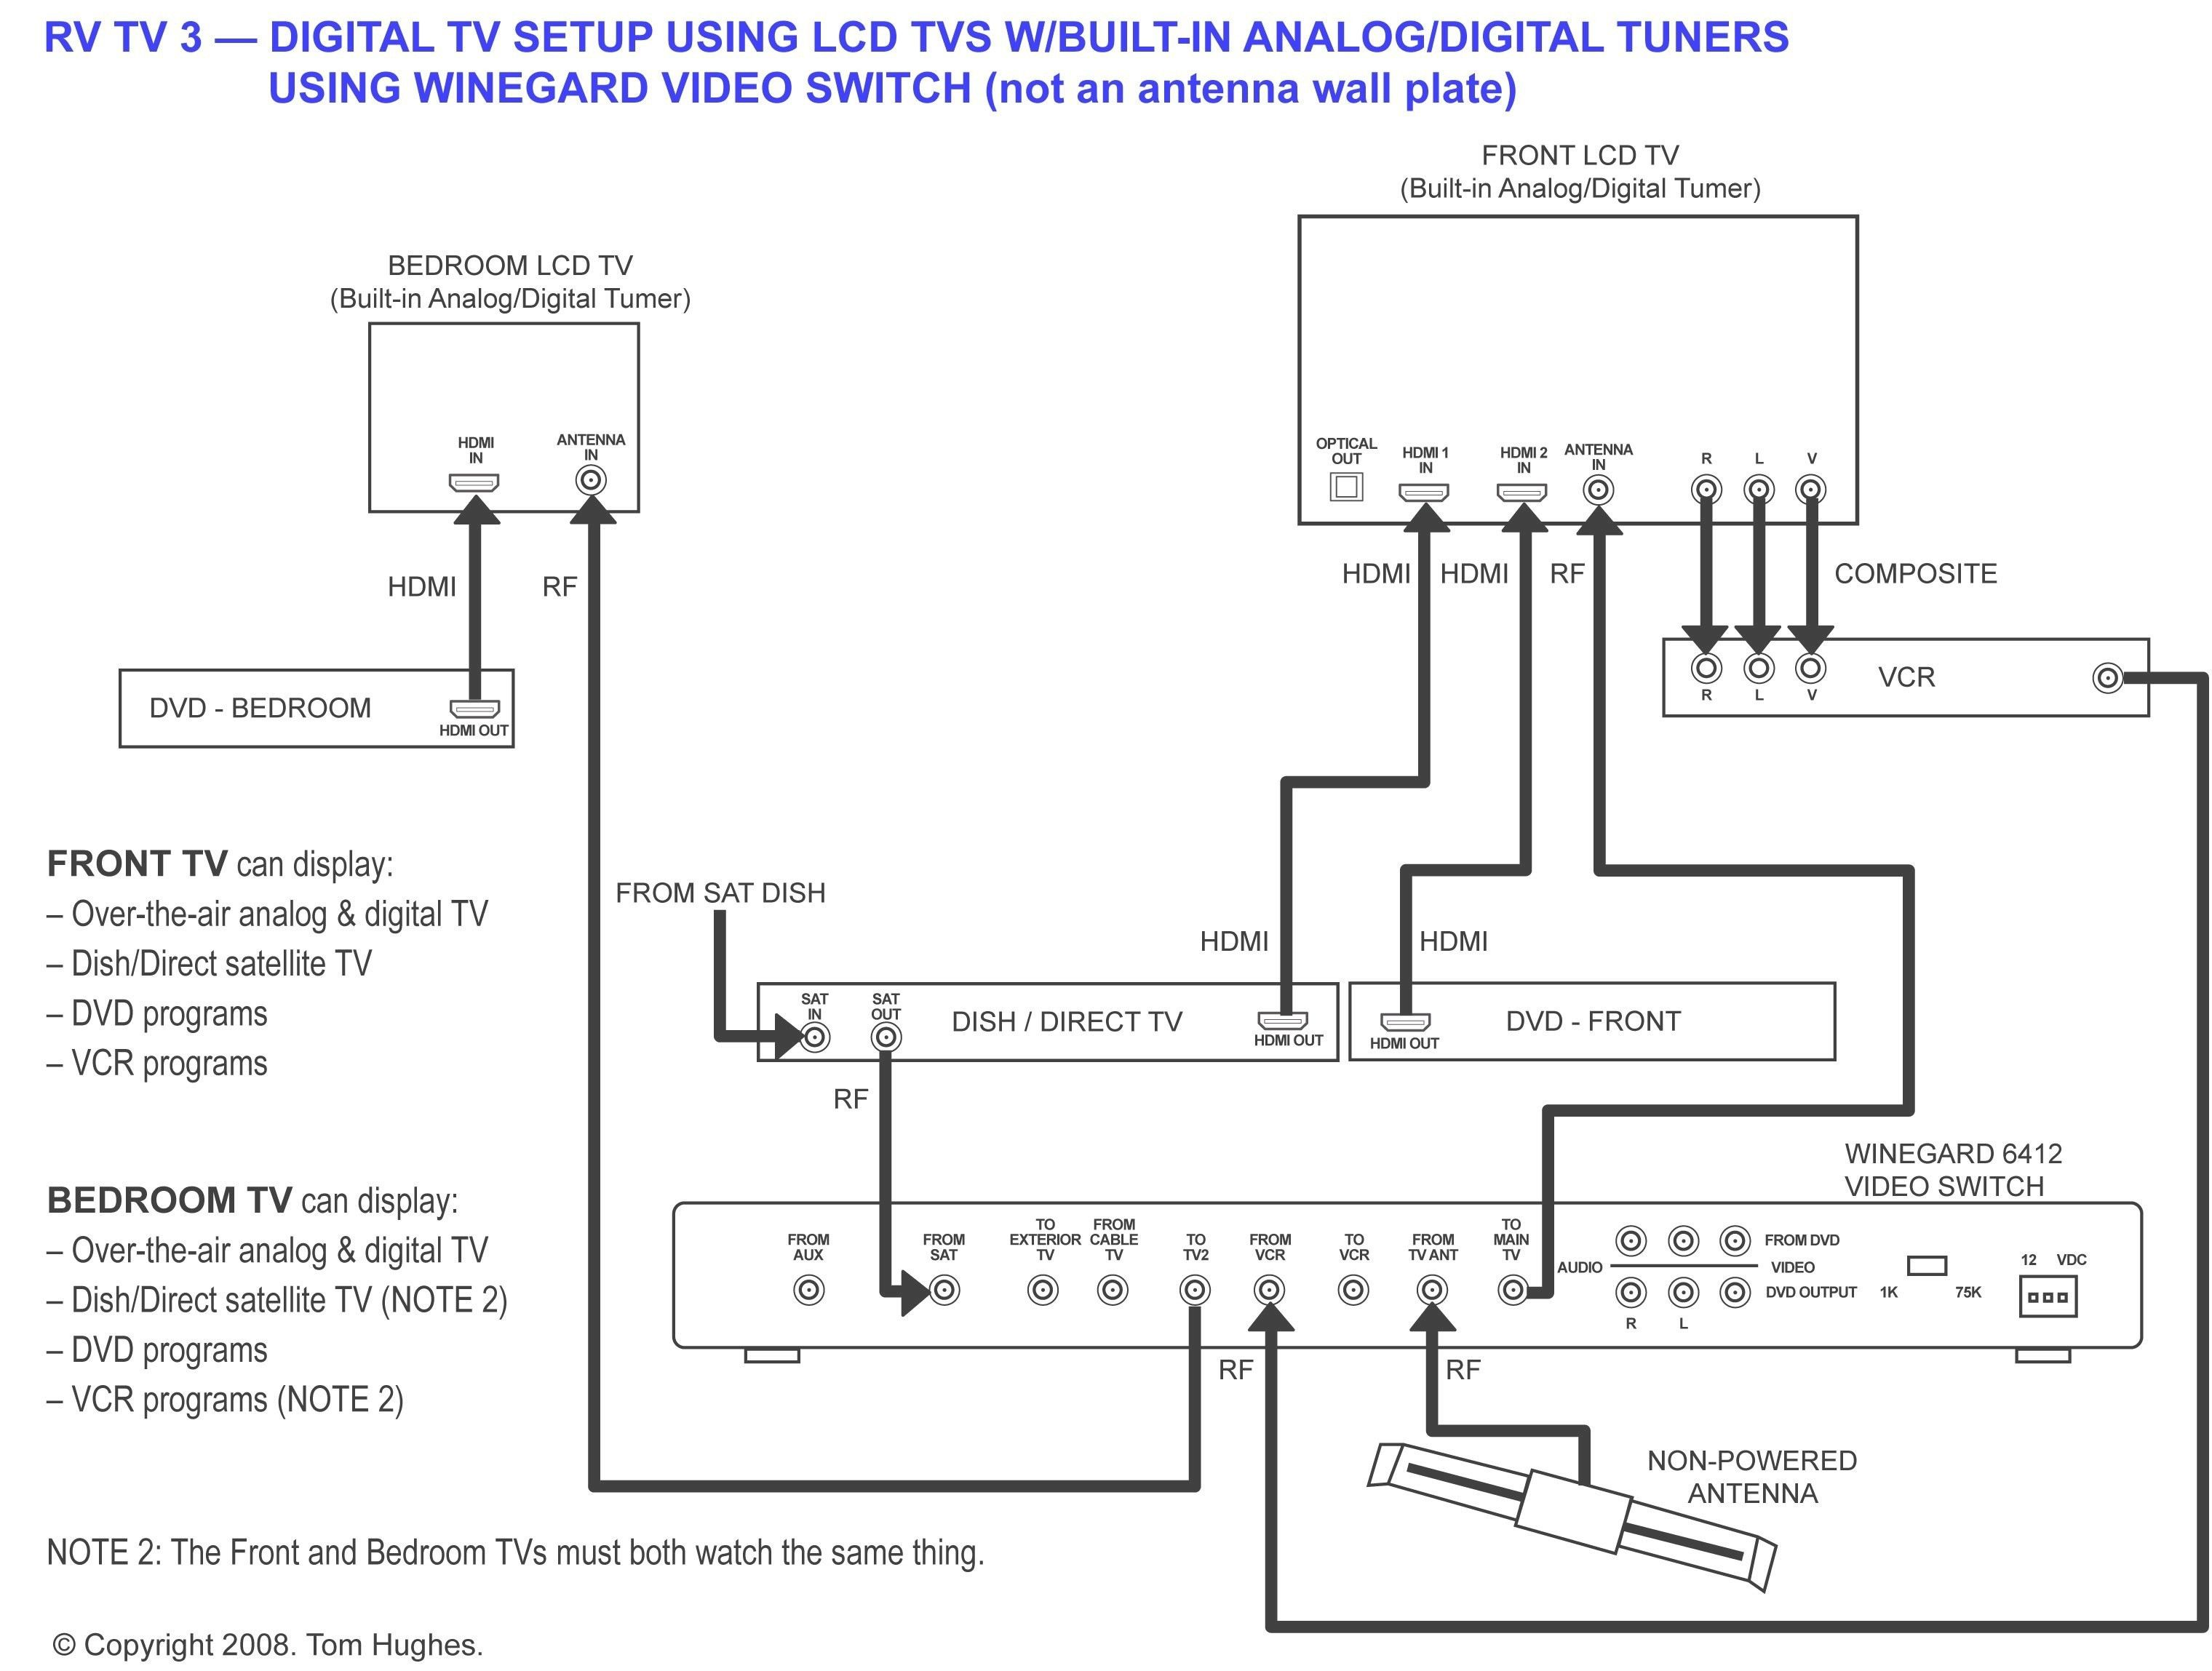 Winegard Rv Satellite Wiring Diagrams - Electrical Wiring Diagram For A  Light for Wiring Diagram Schematics | Winegard Rv Satellite Wiring Diagrams |  | Wiring Diagram Schematics